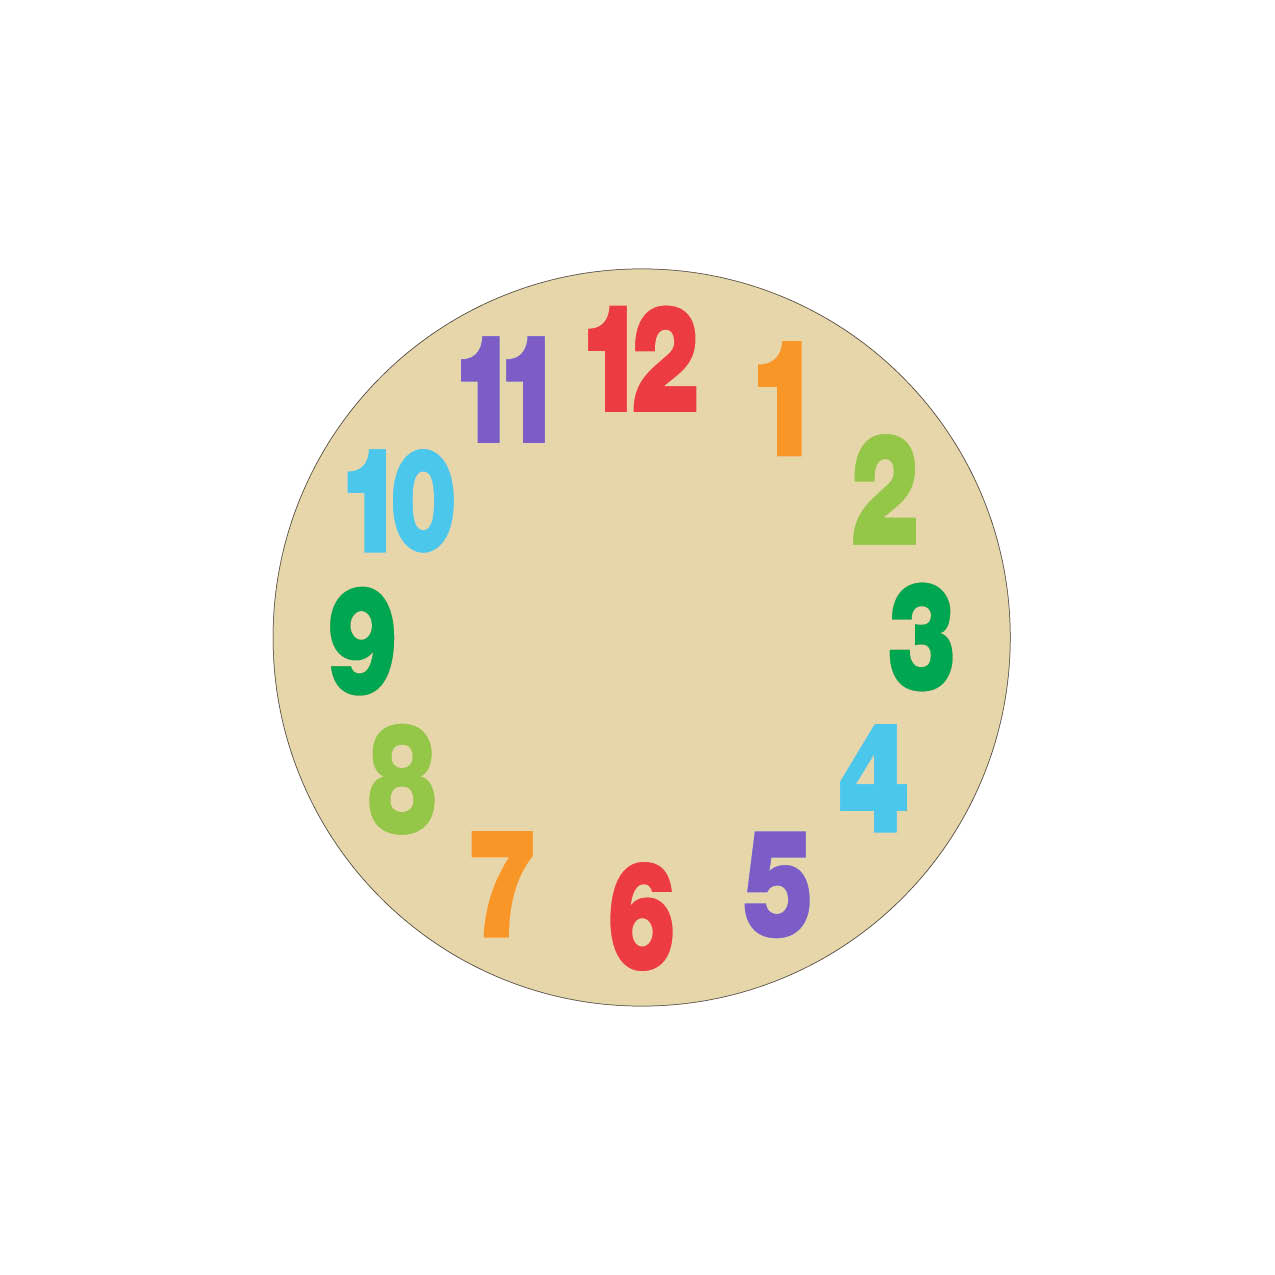 Analogue Clock Face Blank In Color - ClipArt Best